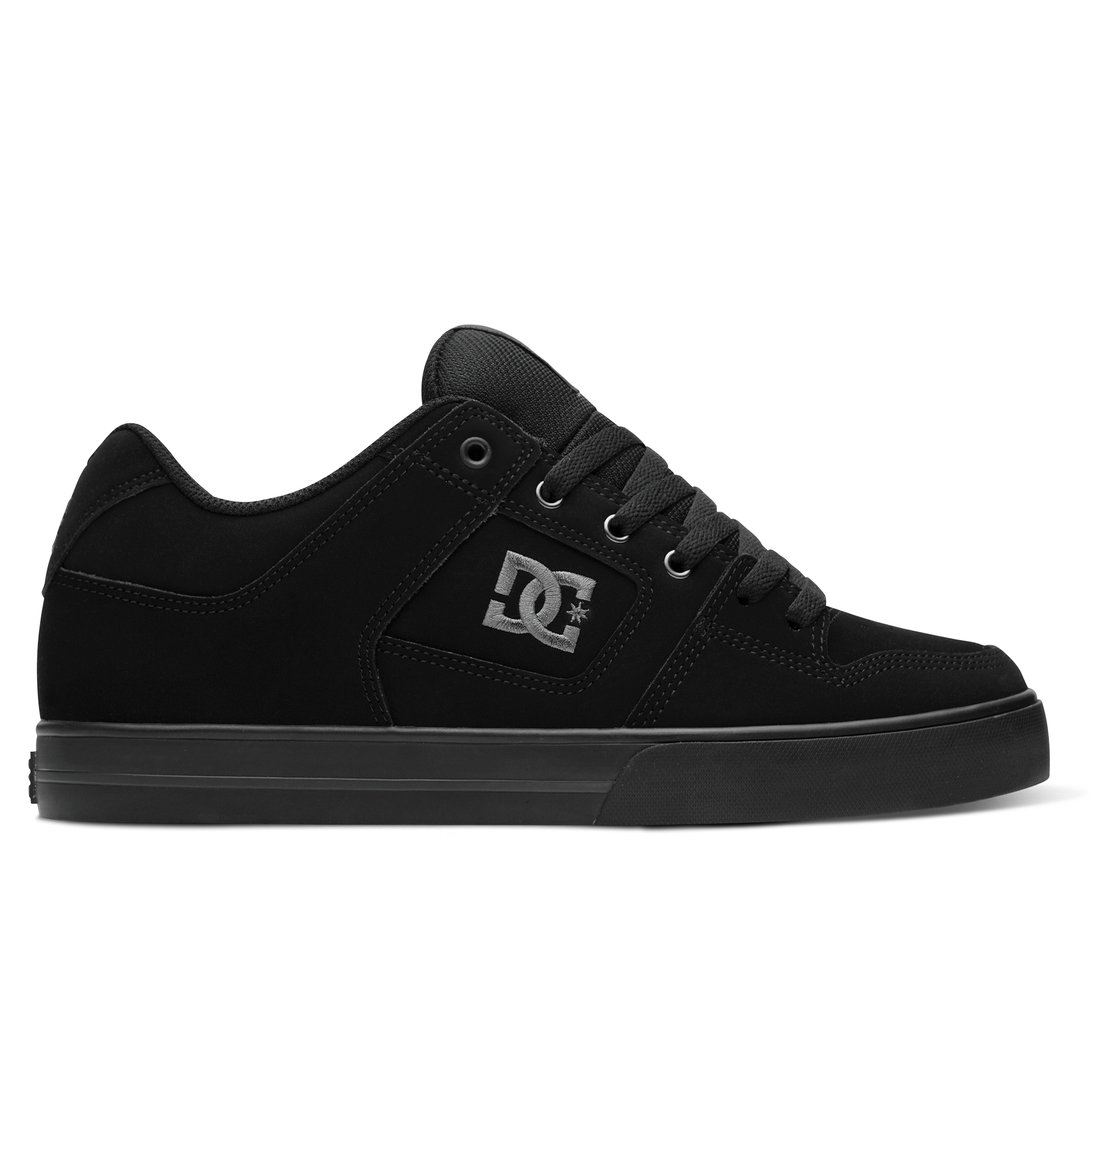 Pure - Chaussures pour homme - DC Shoes